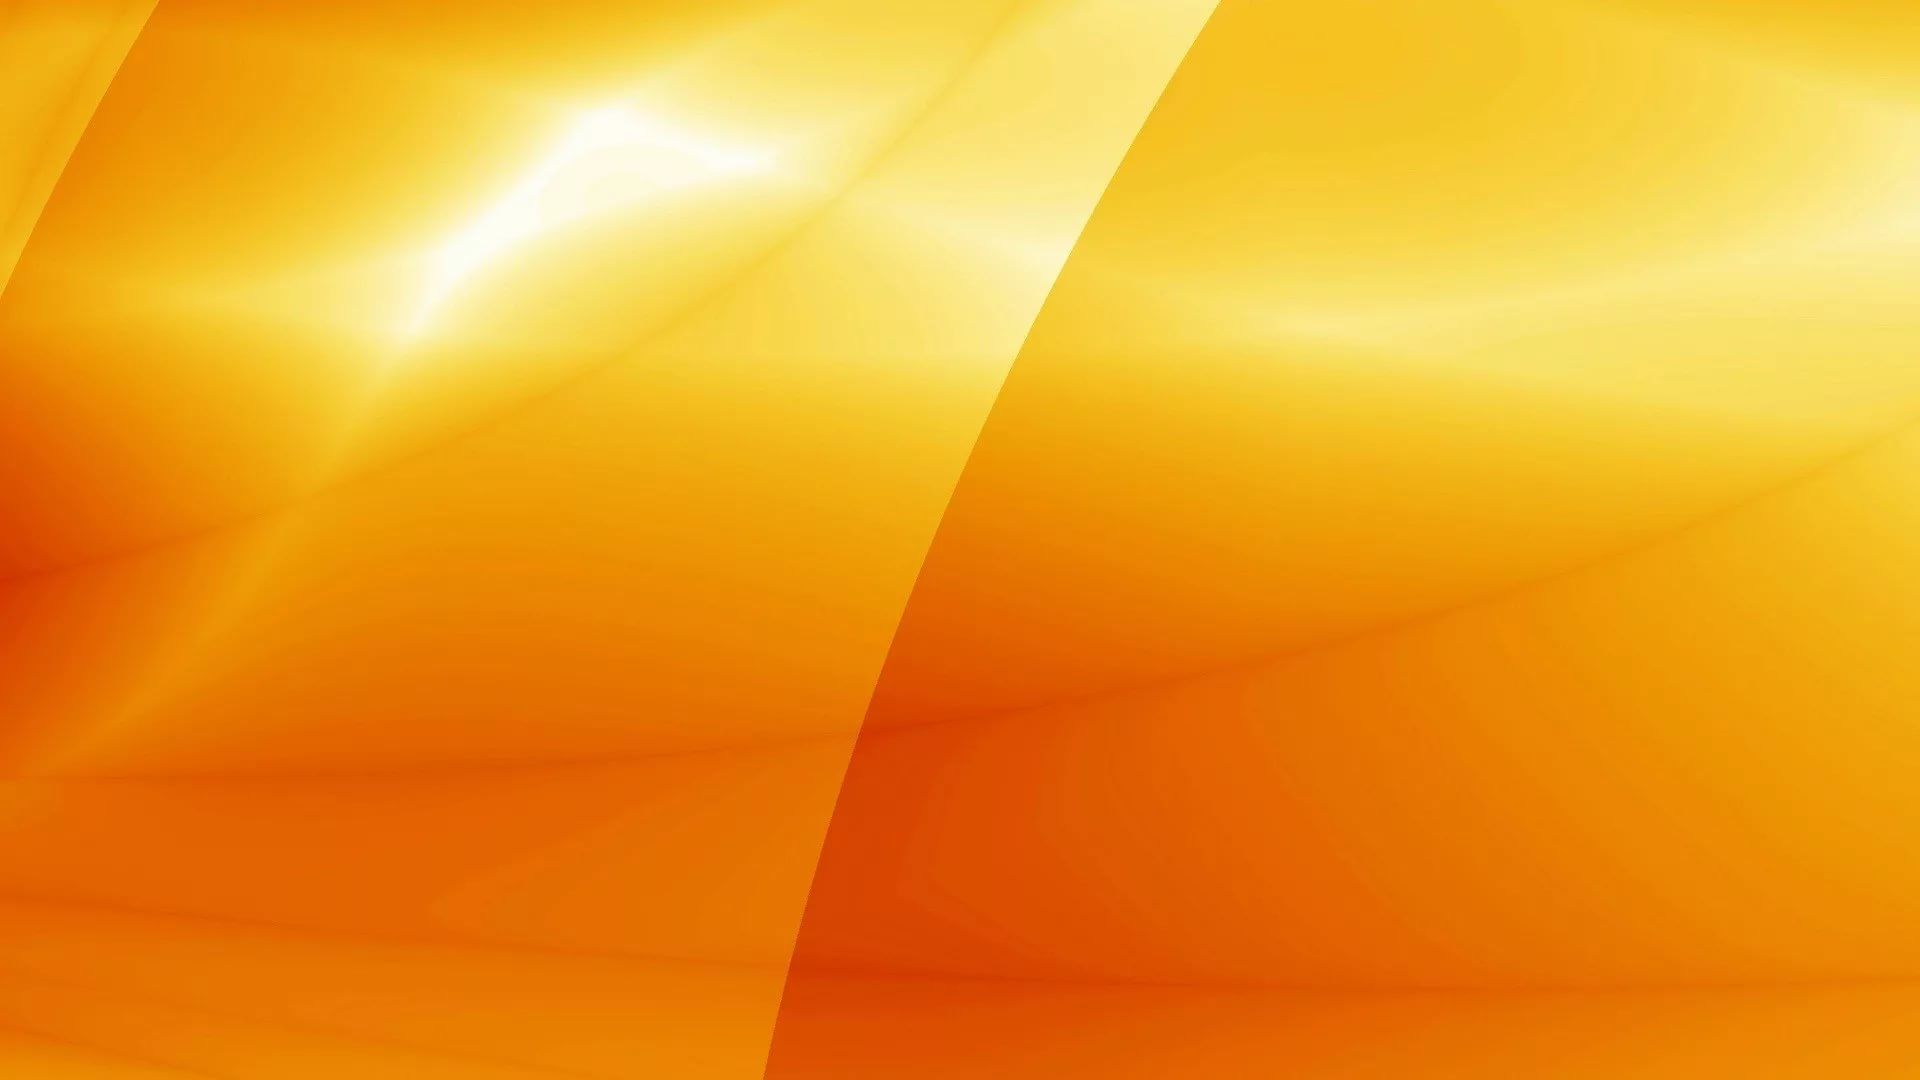 Yellow Abstract 1080p Wallpaper